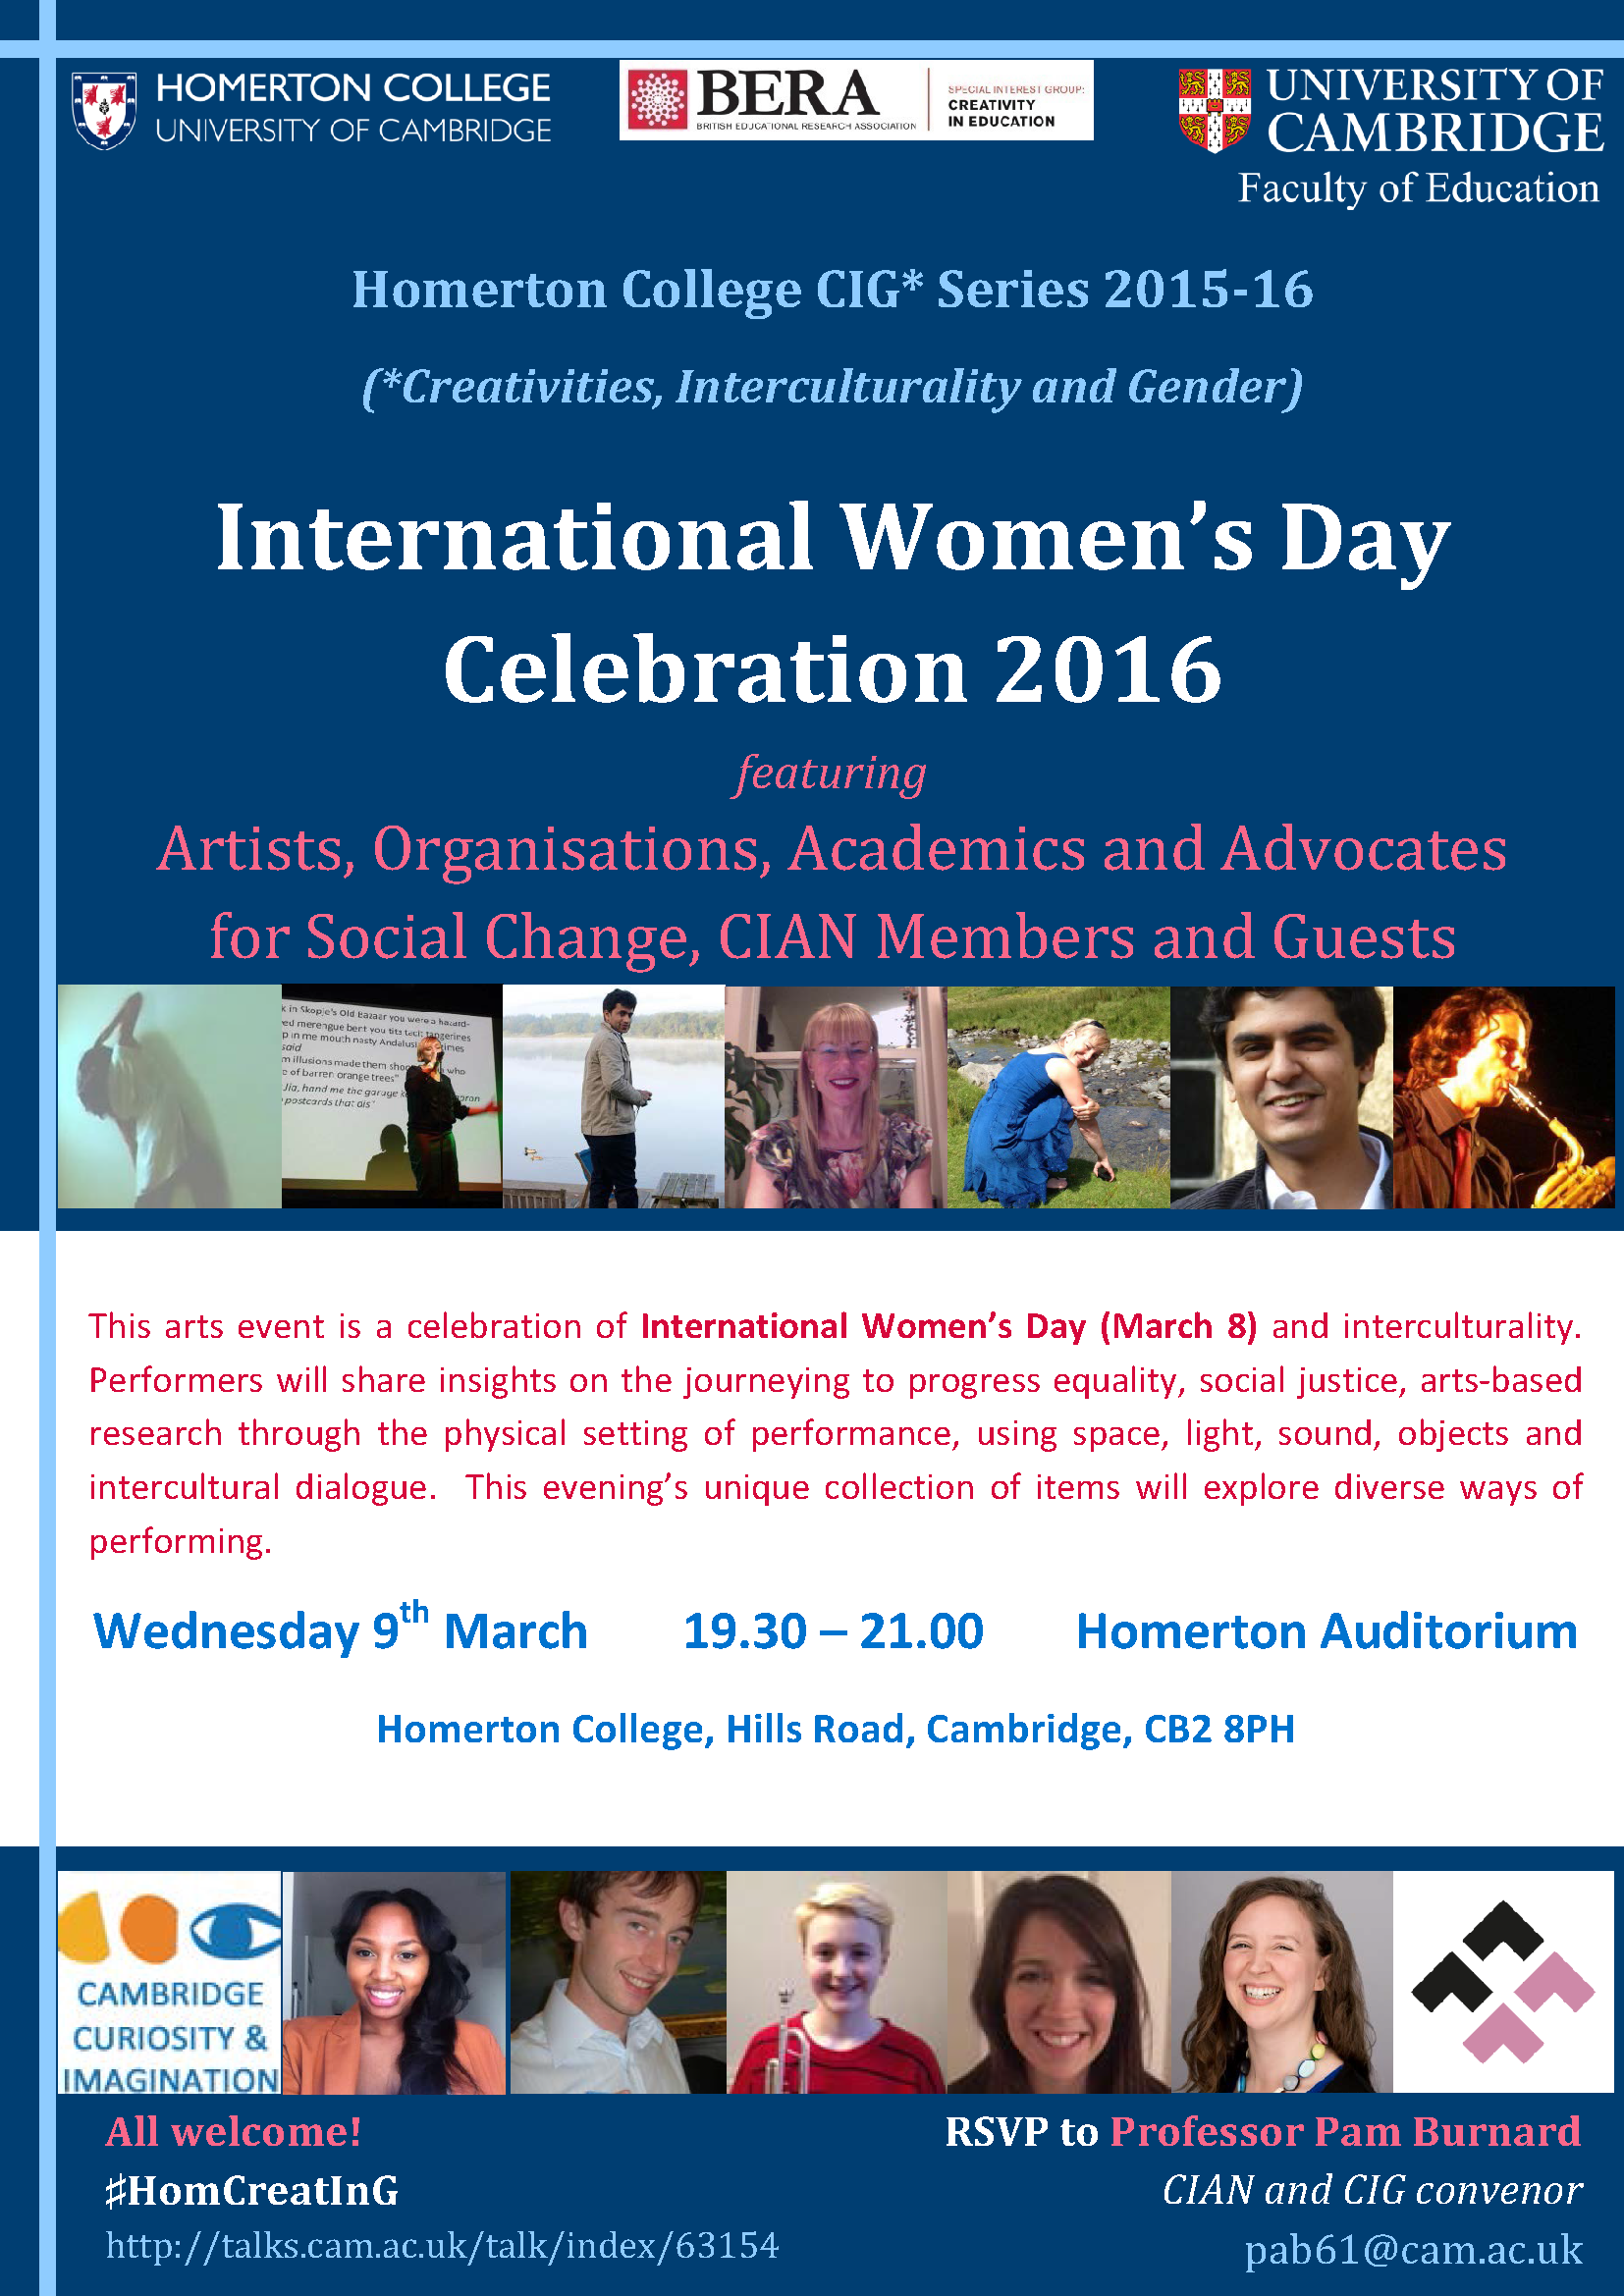 page one of the IWD event flyer